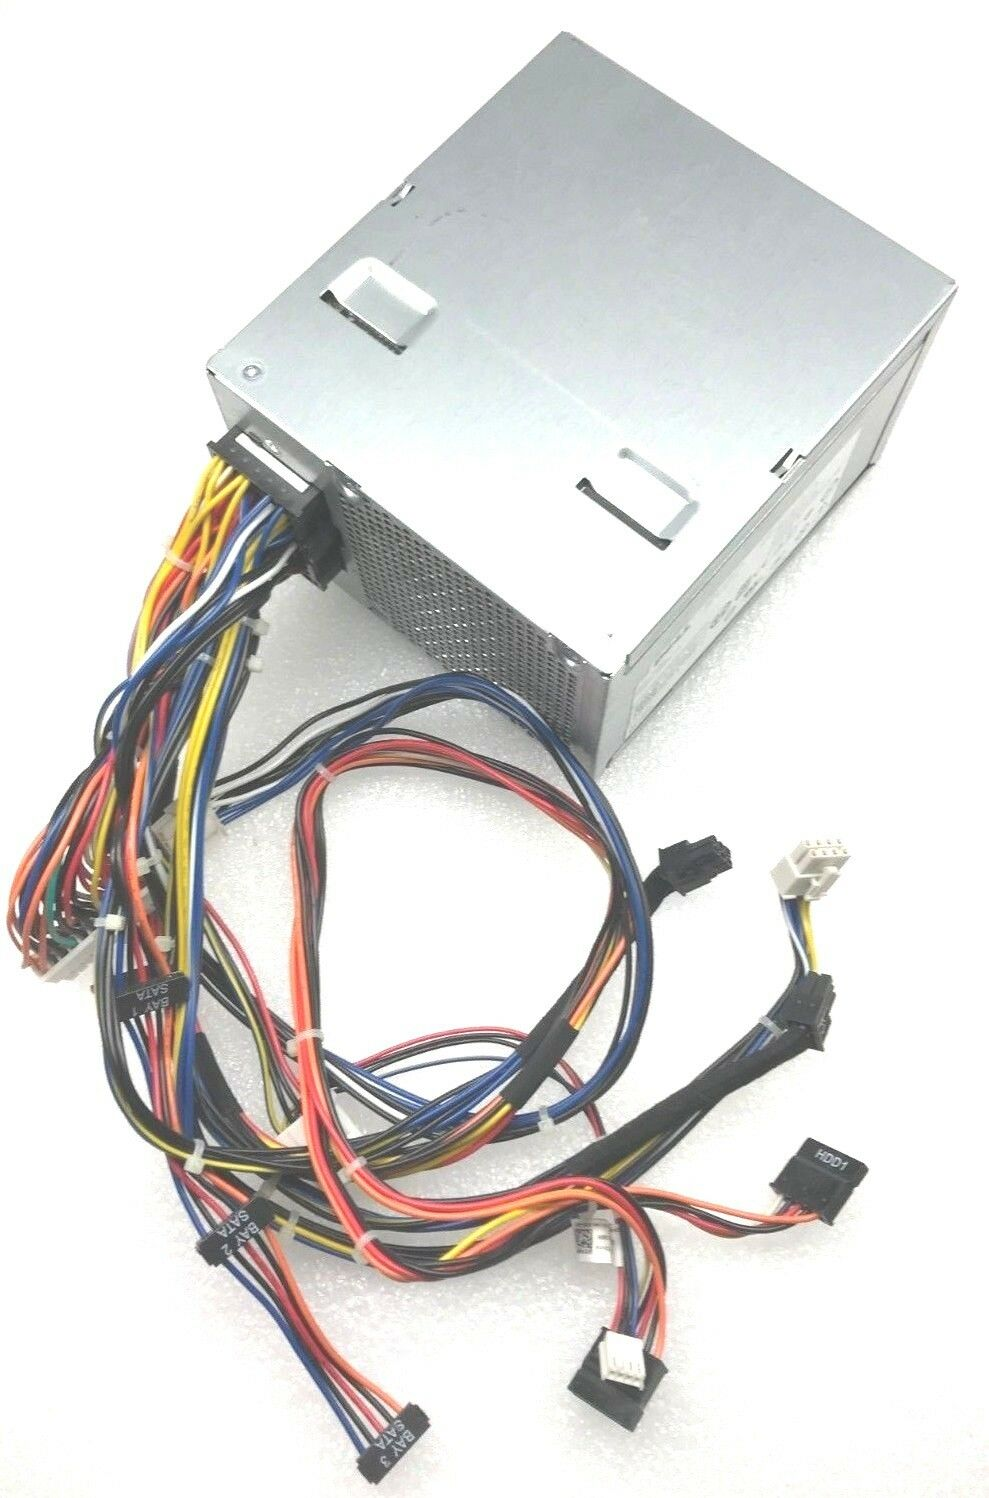 Dell Precision T5500 875w Power Supply With Wire Harness D Pn J556t Wiring Workstations Norton Secured Powered By Verisign